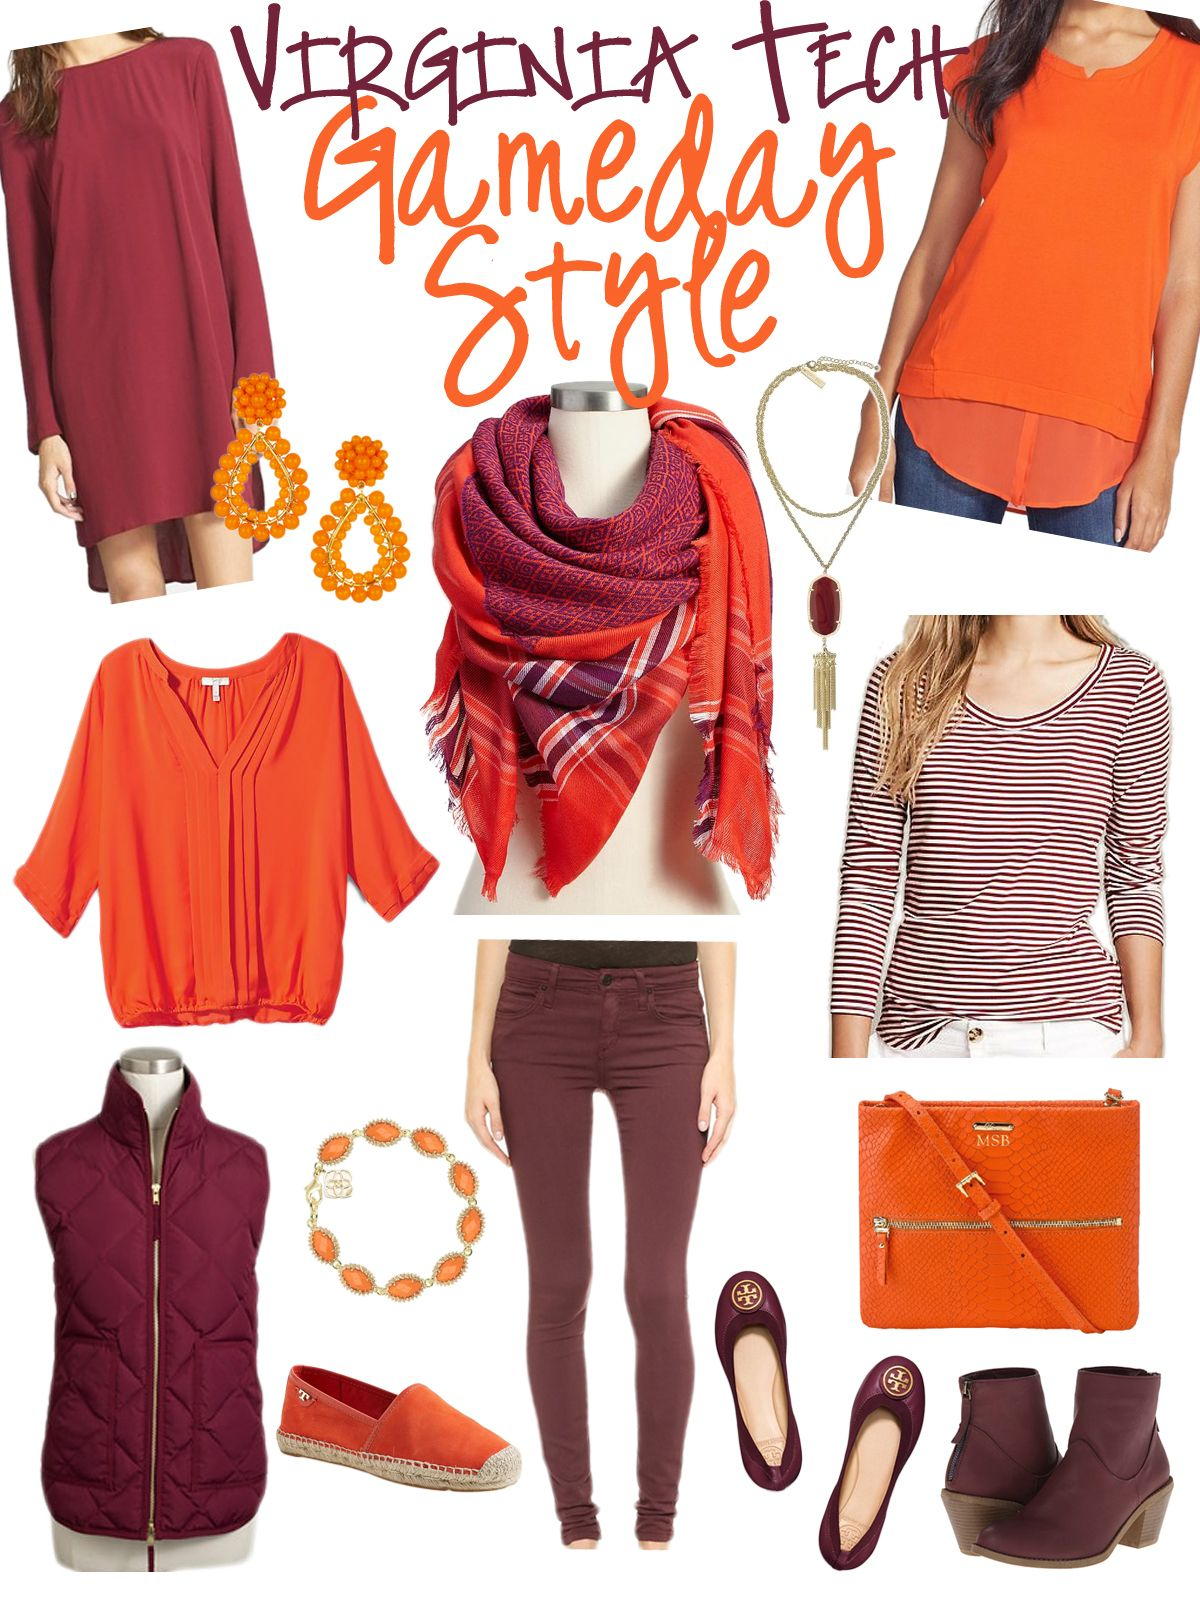 Virginia Tech Gameday Style